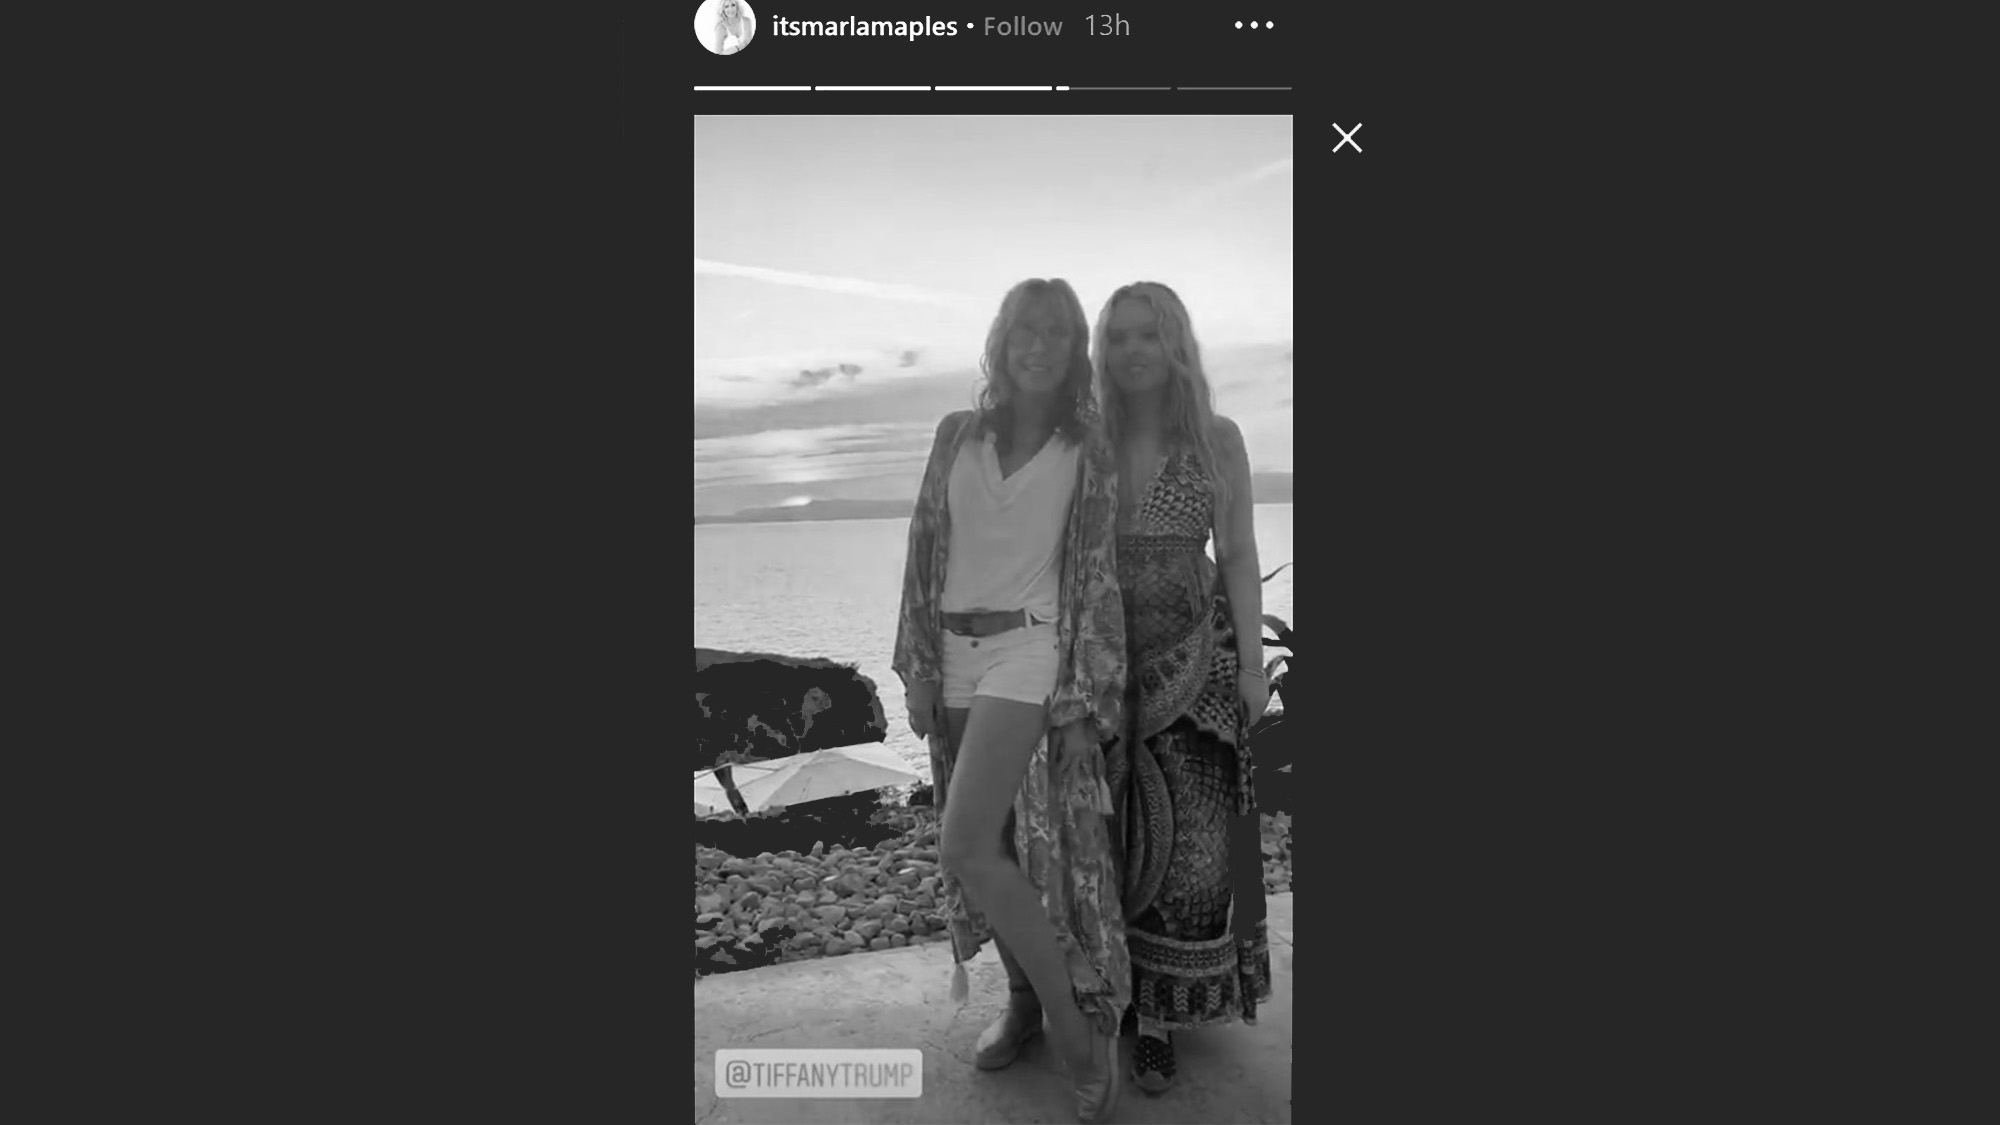 Trumps Daughter And 2nd Wife Snapped In Majorca